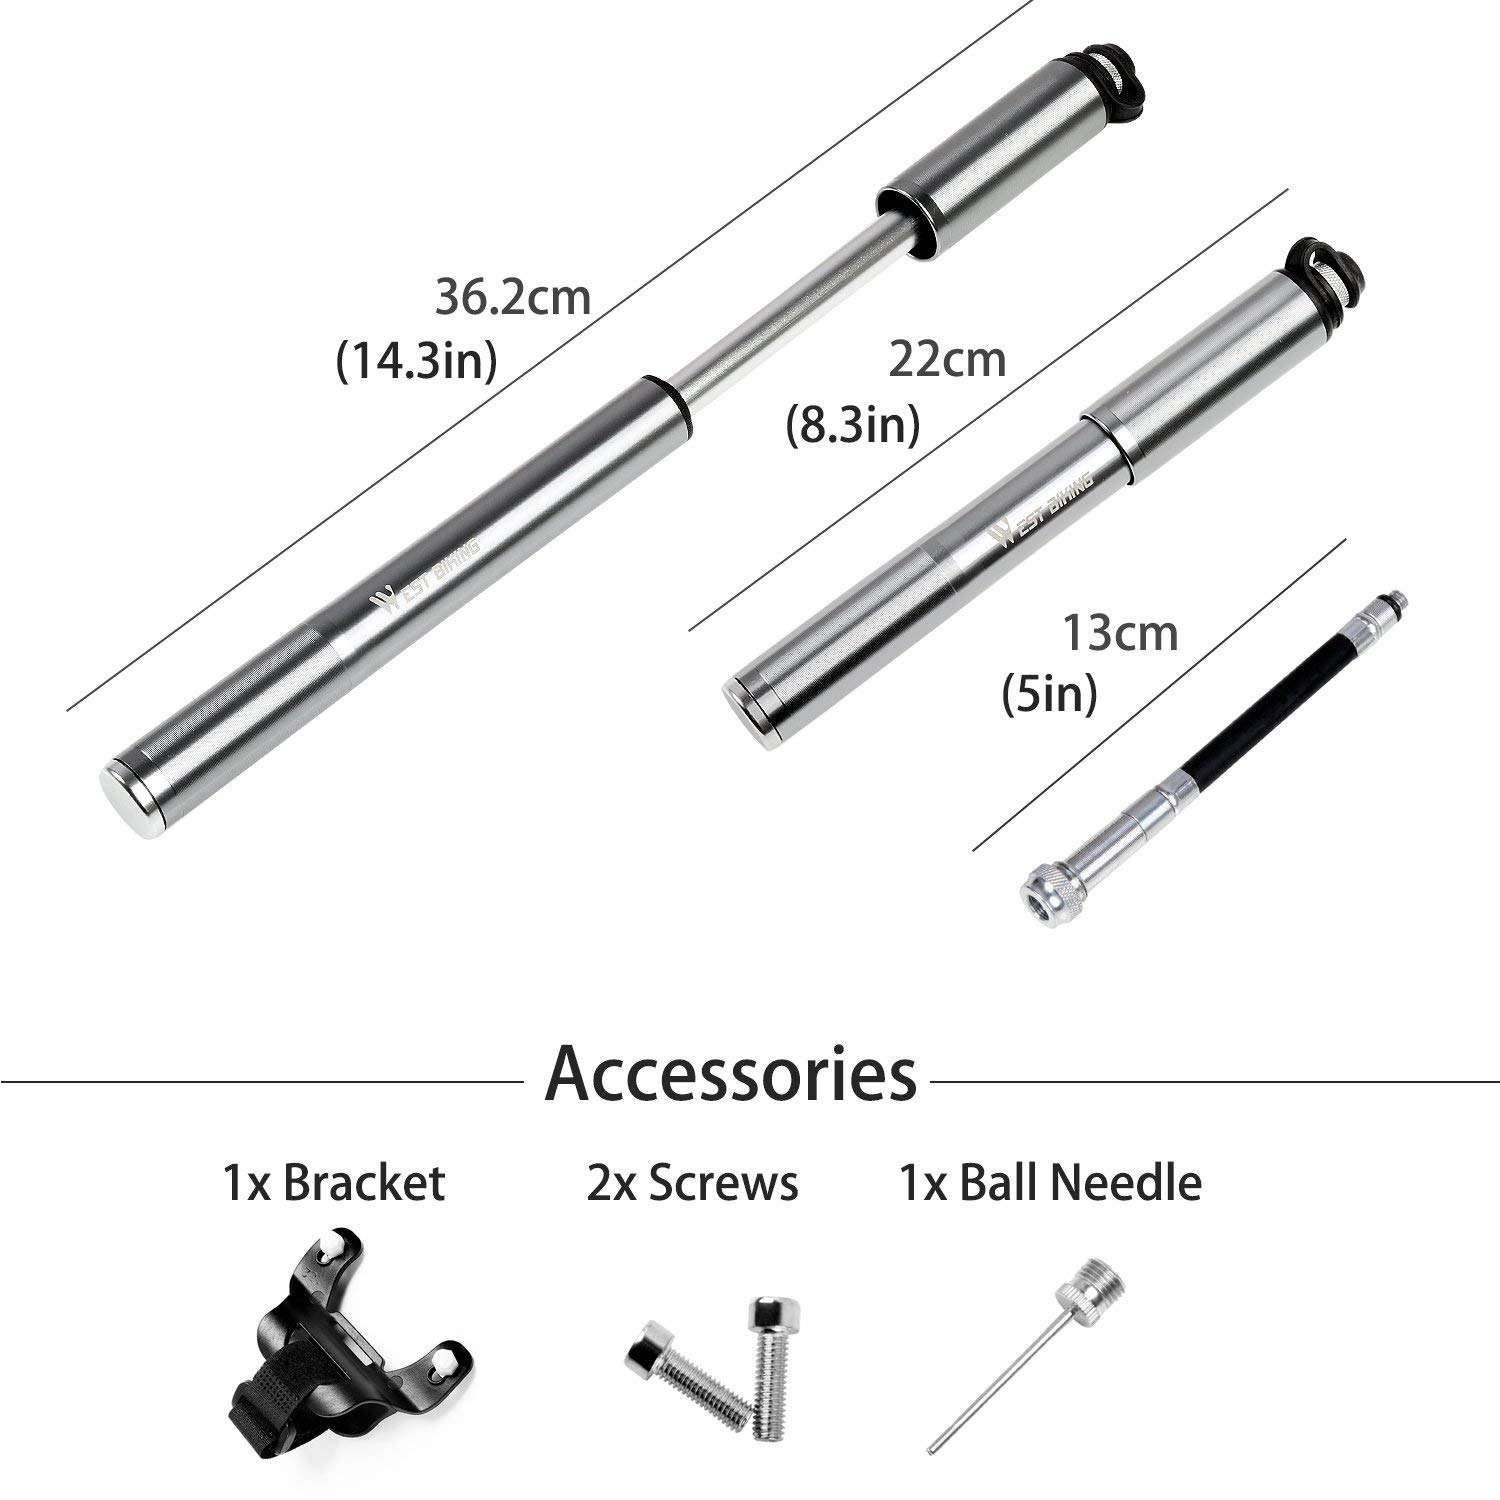 Mini Bike Pump with Gauge 160 PSI Portable High Pressure Hand Pump with Ball Needle for MTB Road BMX Bike Presta /& Schrader Compatible Bicycle Tire Pump